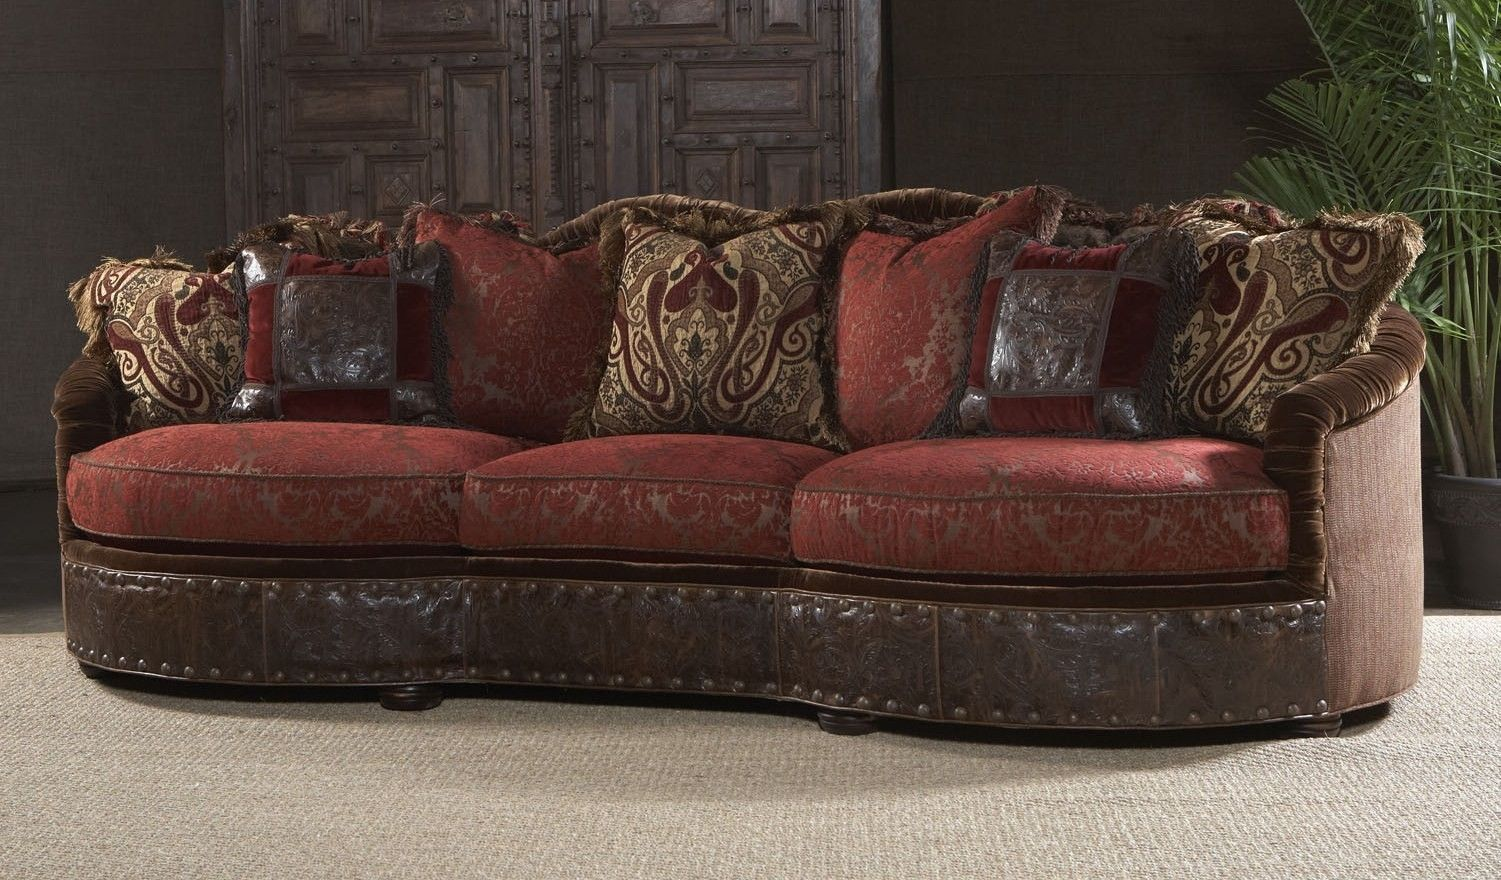 Luxury Furniture Sofa, Couch And Decorative Pillows CustomMade by ...